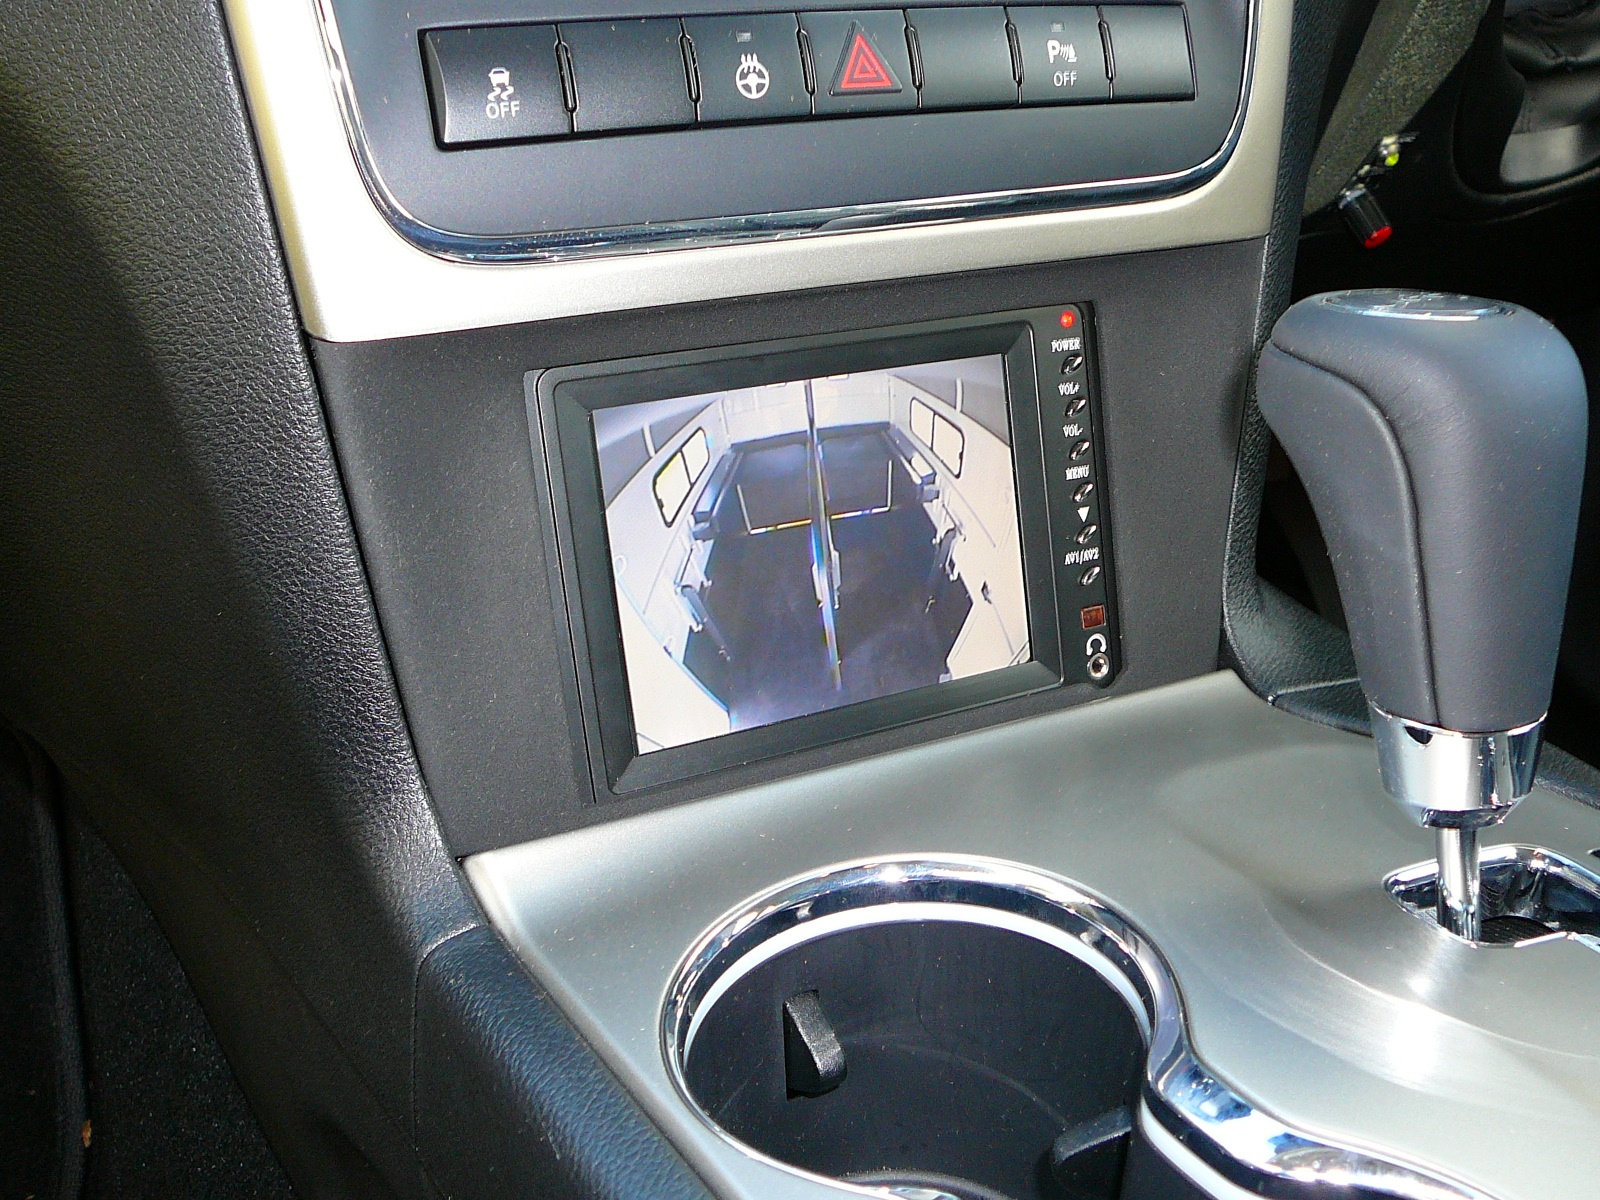 2012 Jeep Cherokee with reverse camera and horse float camera system